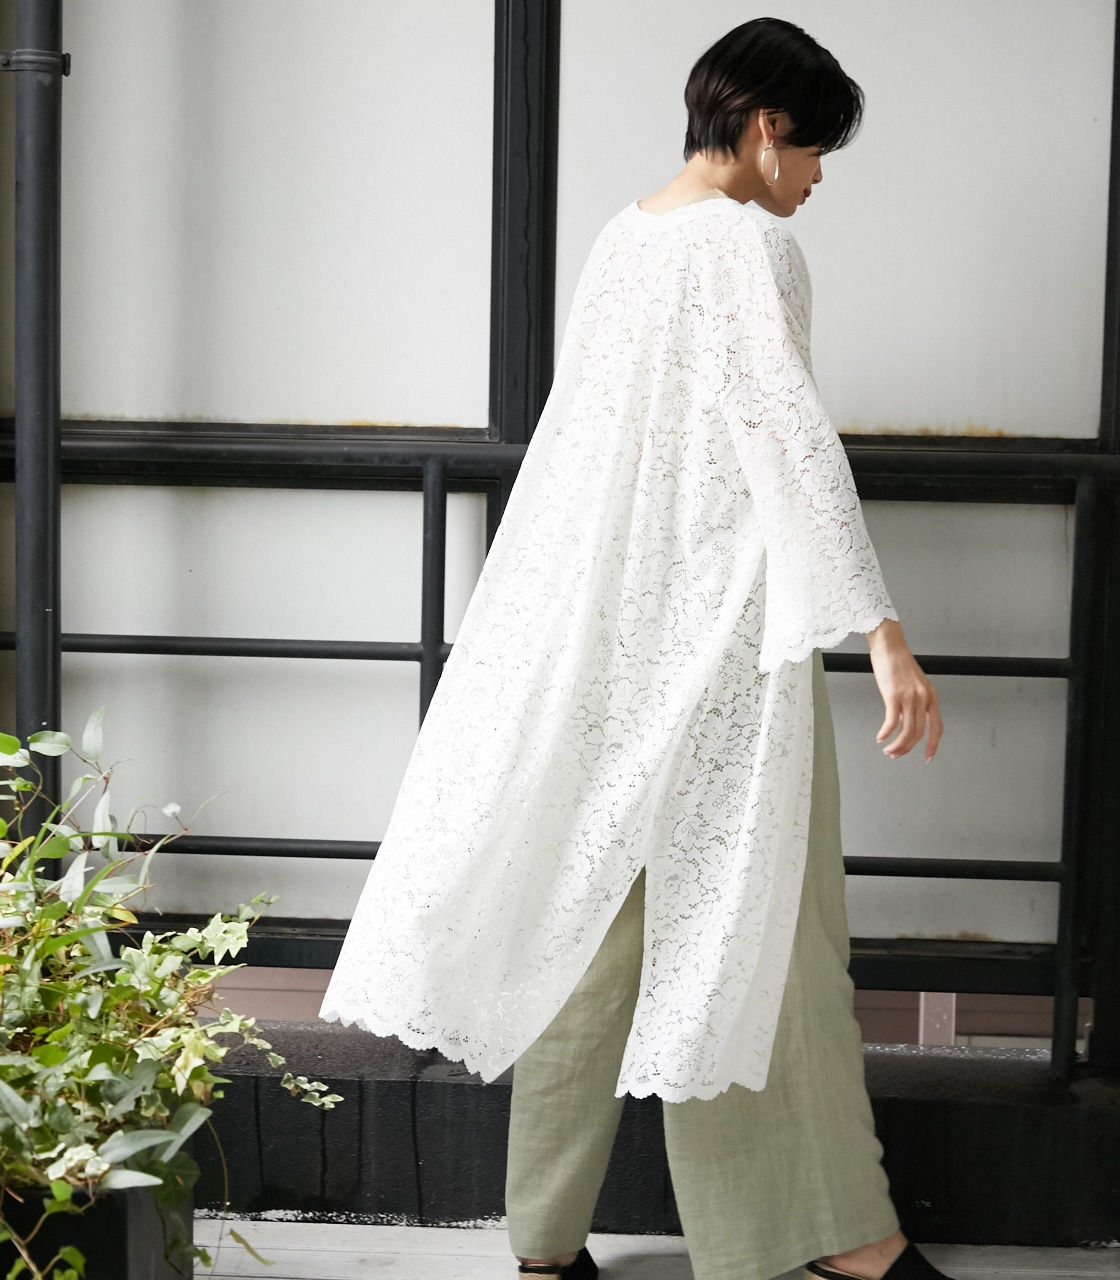 SCALLOP LACE LONG GOWN/スカロップレースロングガウン 詳細画像 O/WHT 12